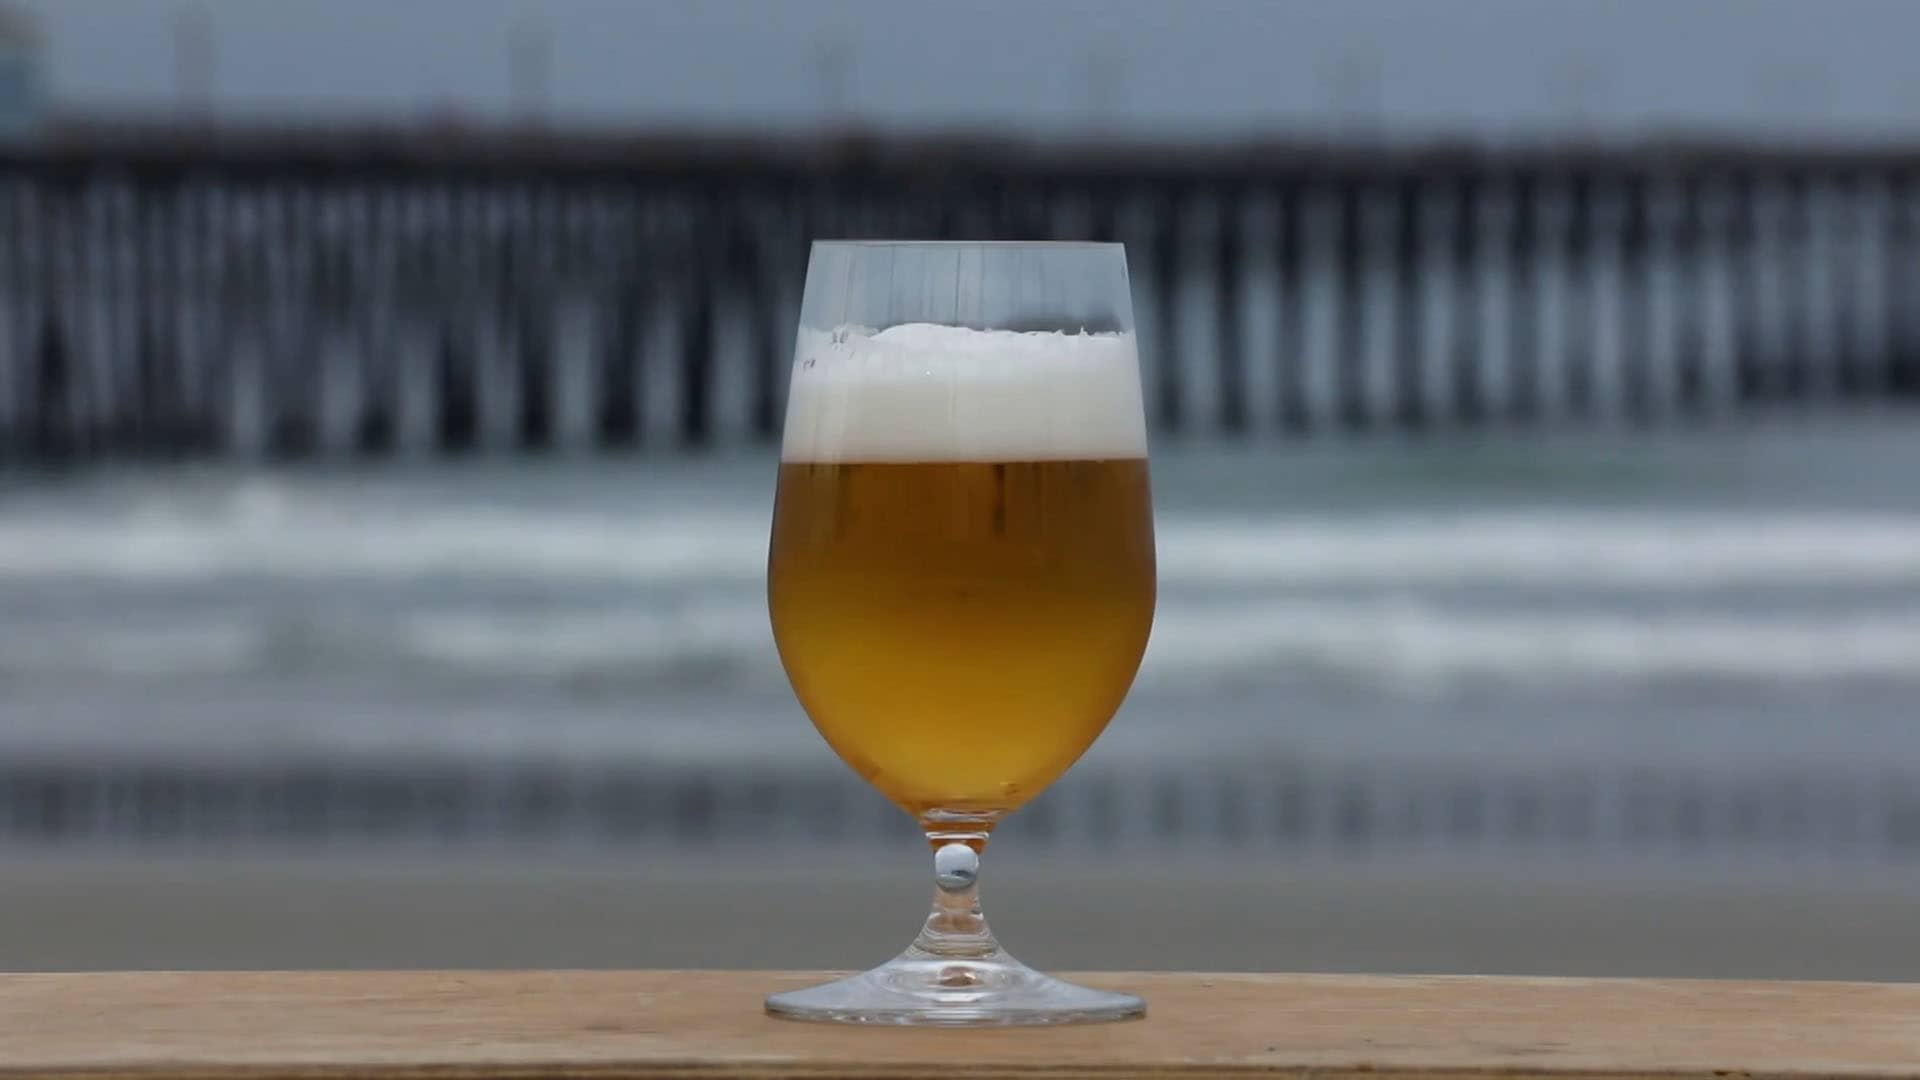 A glass of beer over a wooden countertop, with a beach and a long pier as background